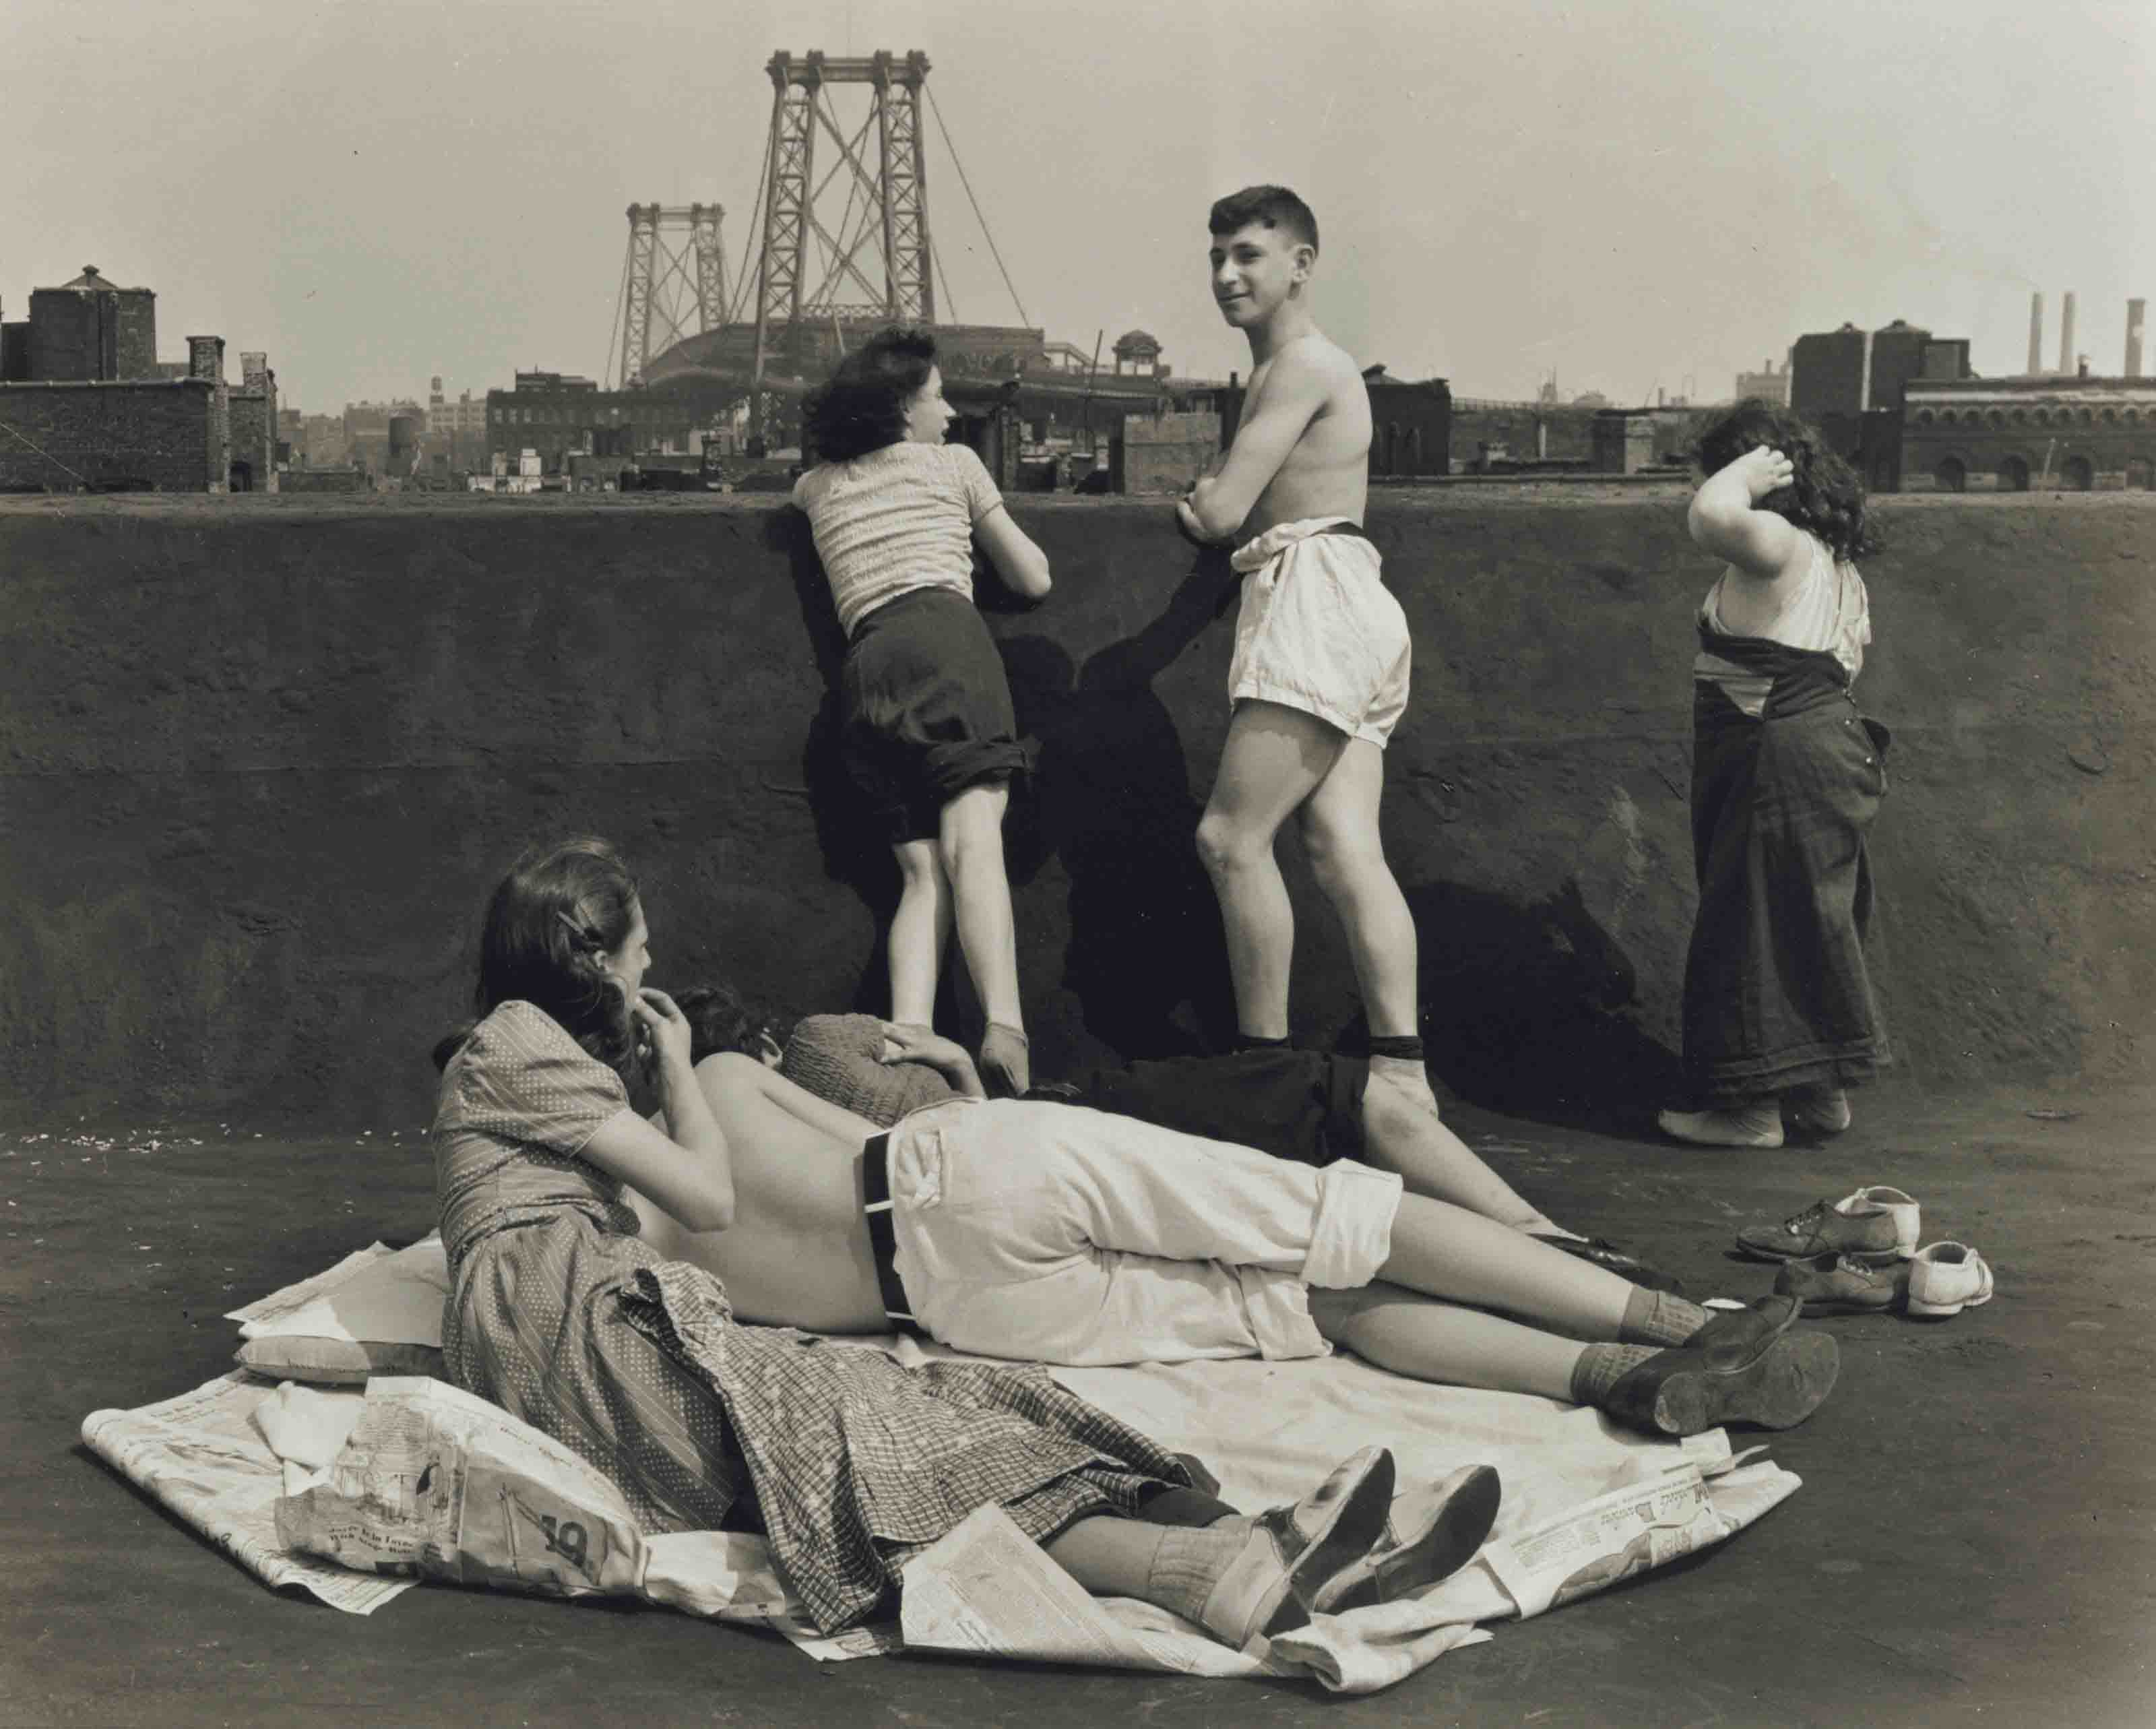 Children on Roof, Pitt St., N.Y., 1938